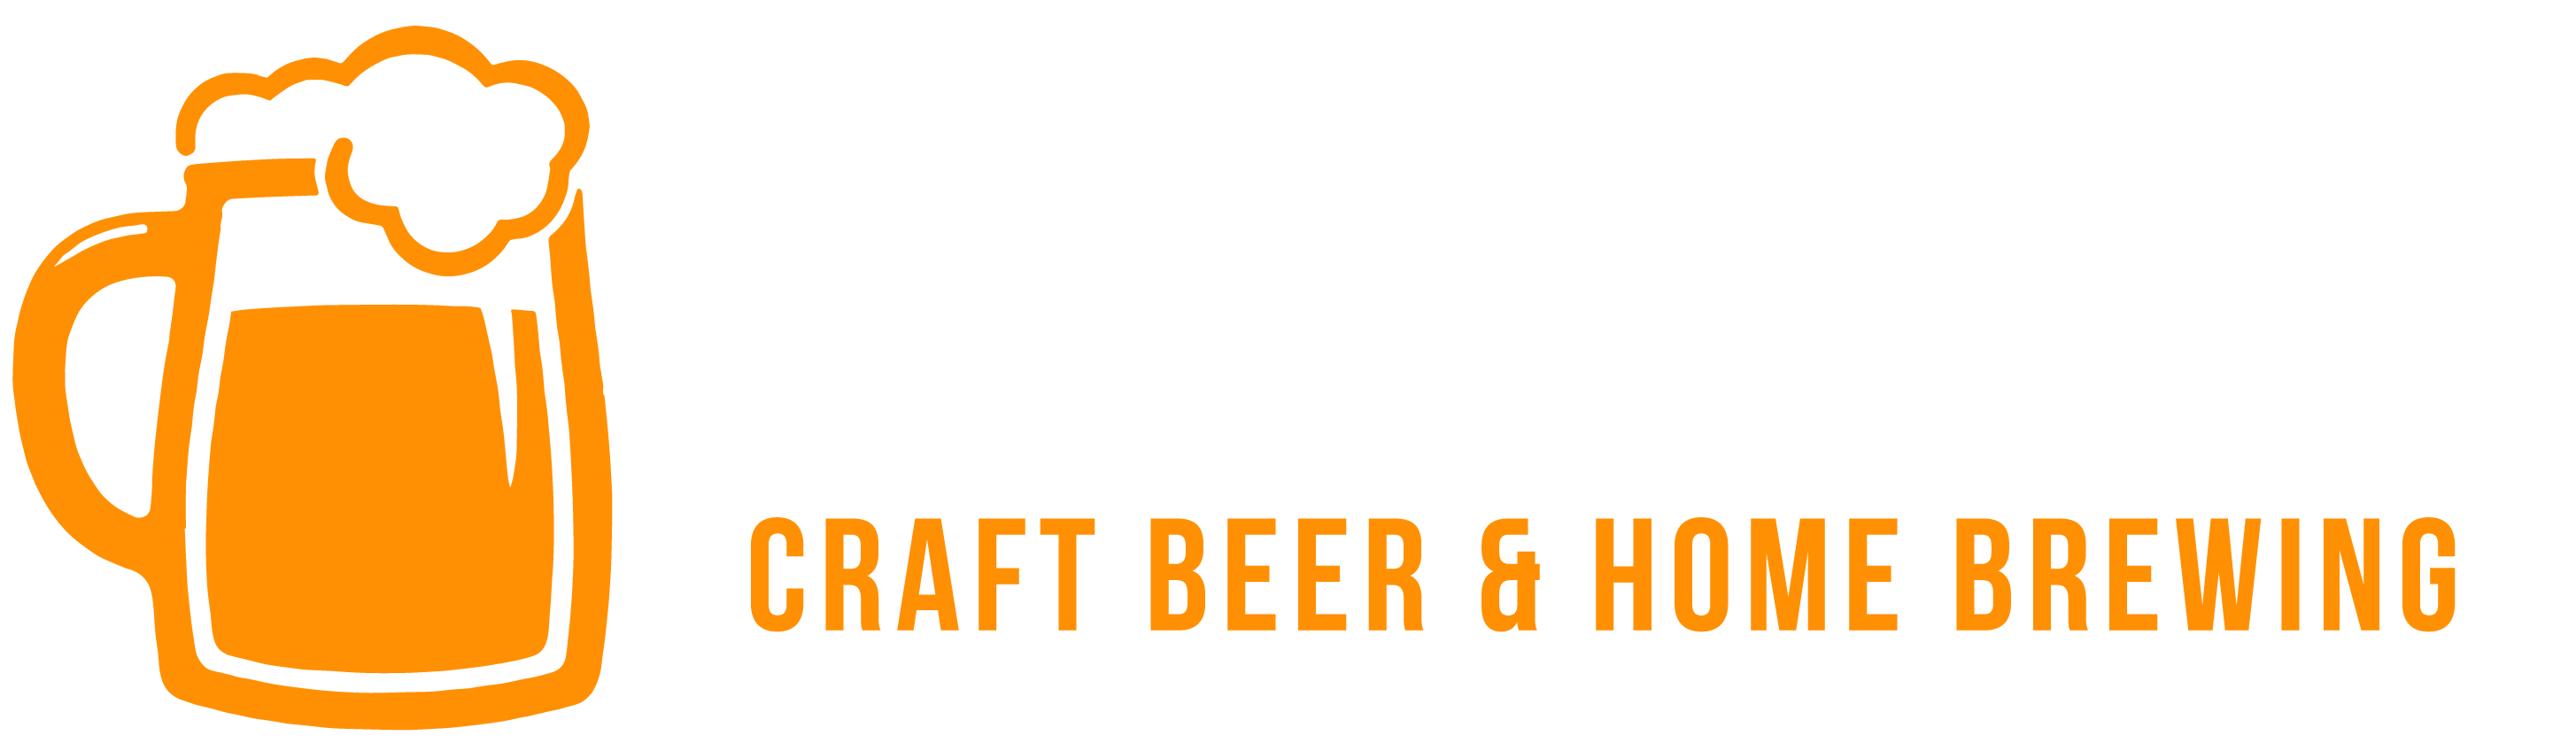 Craft Beer and Home Brewing shop in Malta